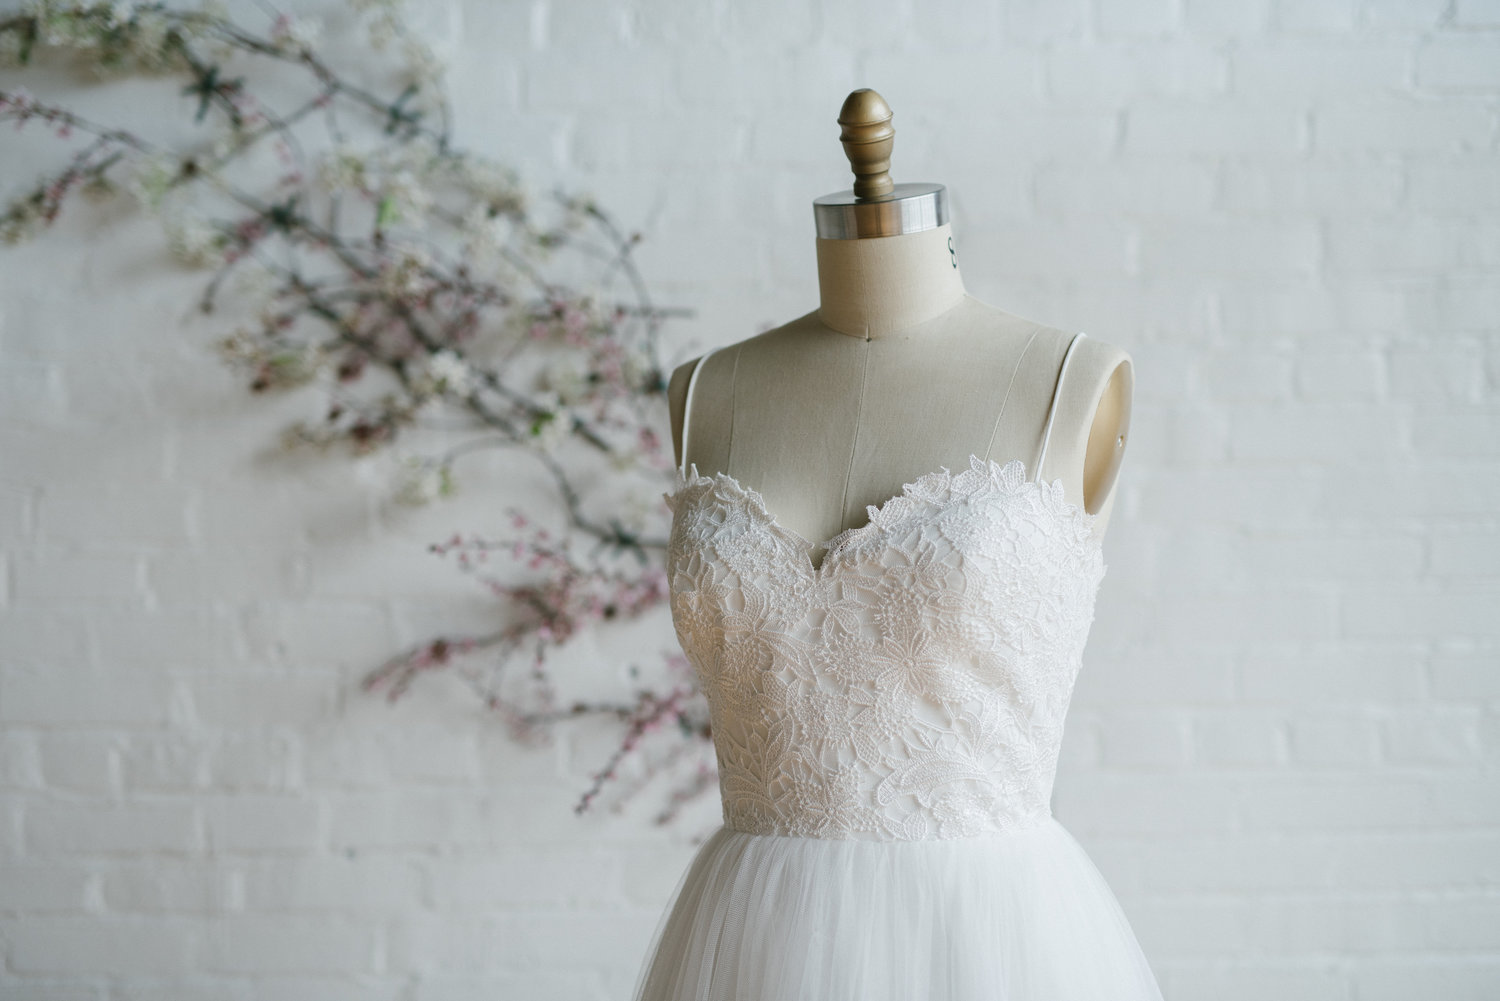 Couture Closet Facebook Online Only Wedding Dress Sample Sale Event,Cheap Wedding Dresses For Sale Near Me